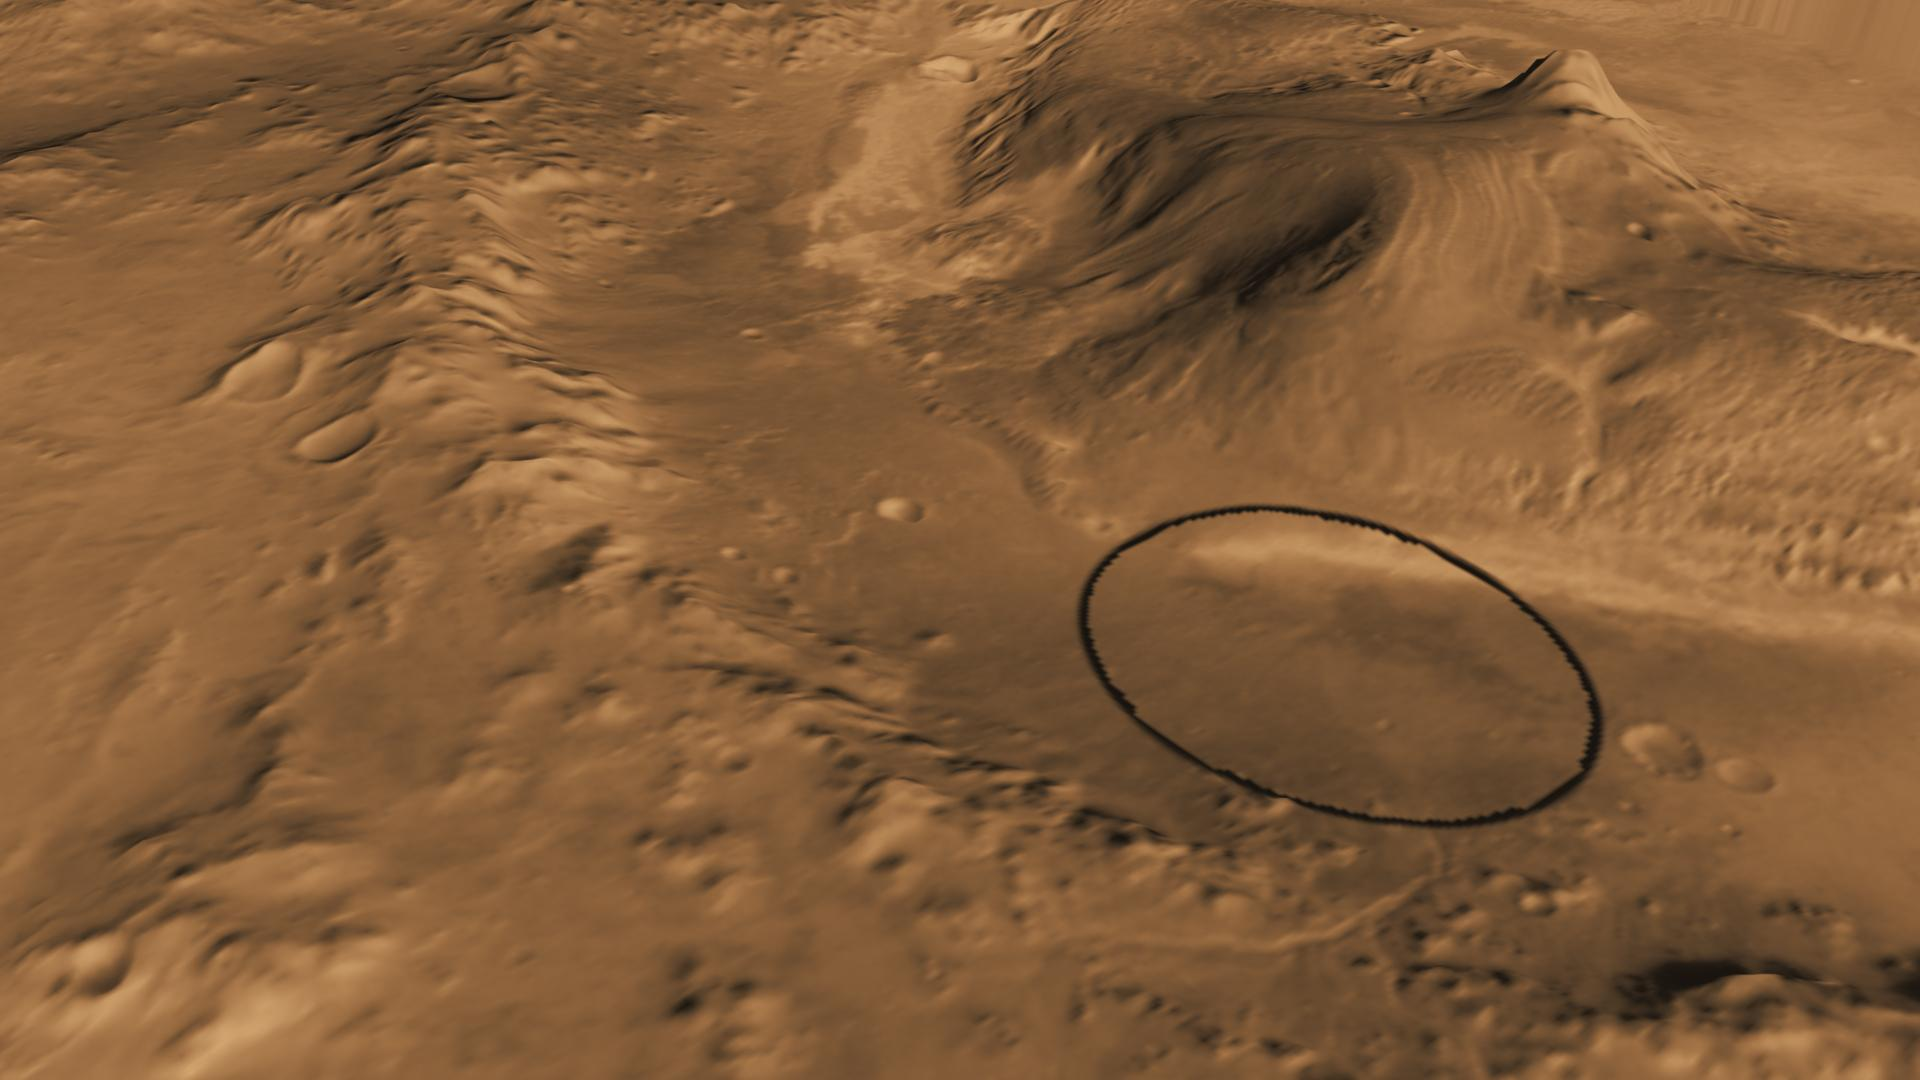 NASA's Next Mars Rover to Land at Huge Gale Crater